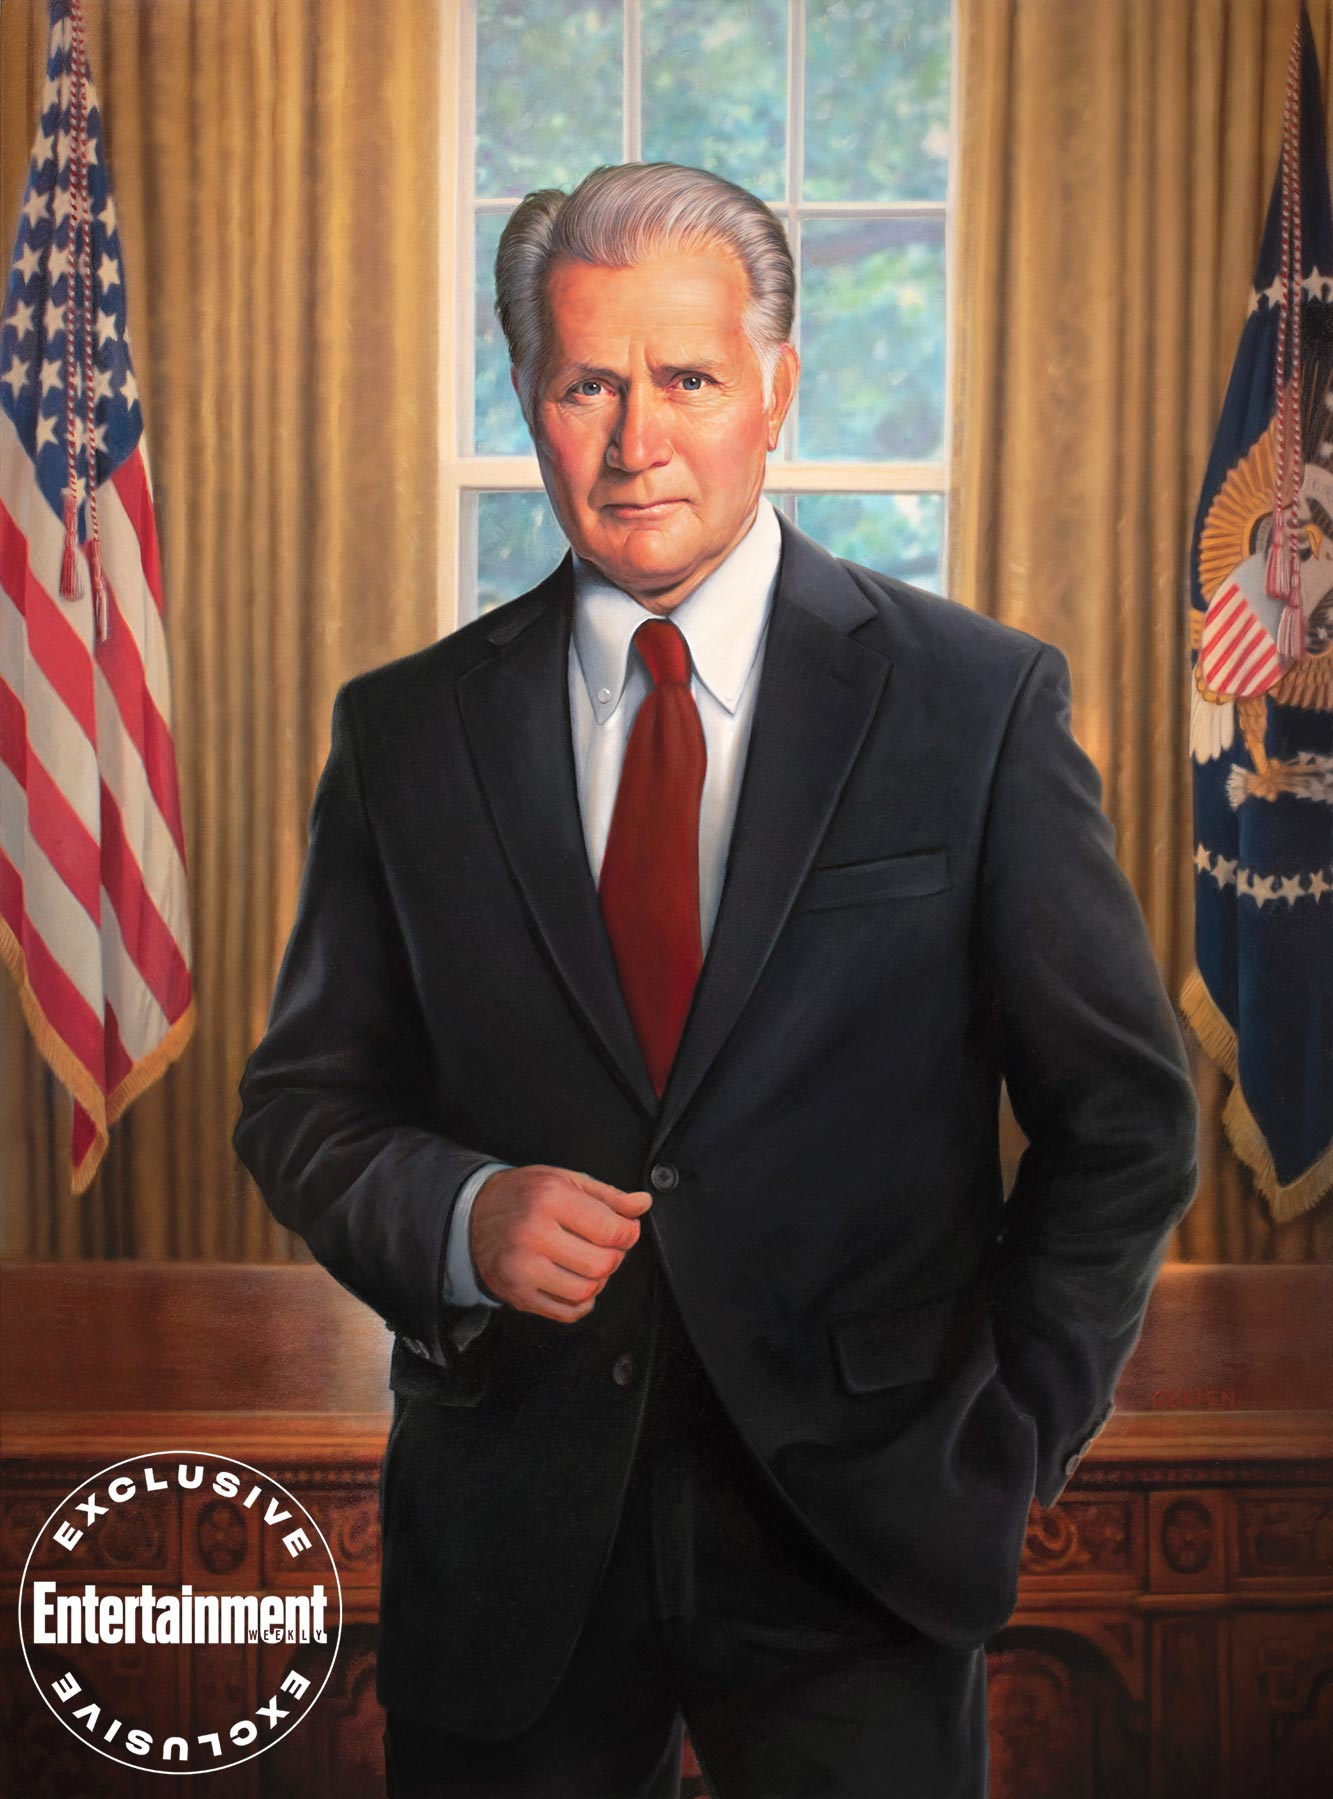 Martin Sheen (President Bartlet)